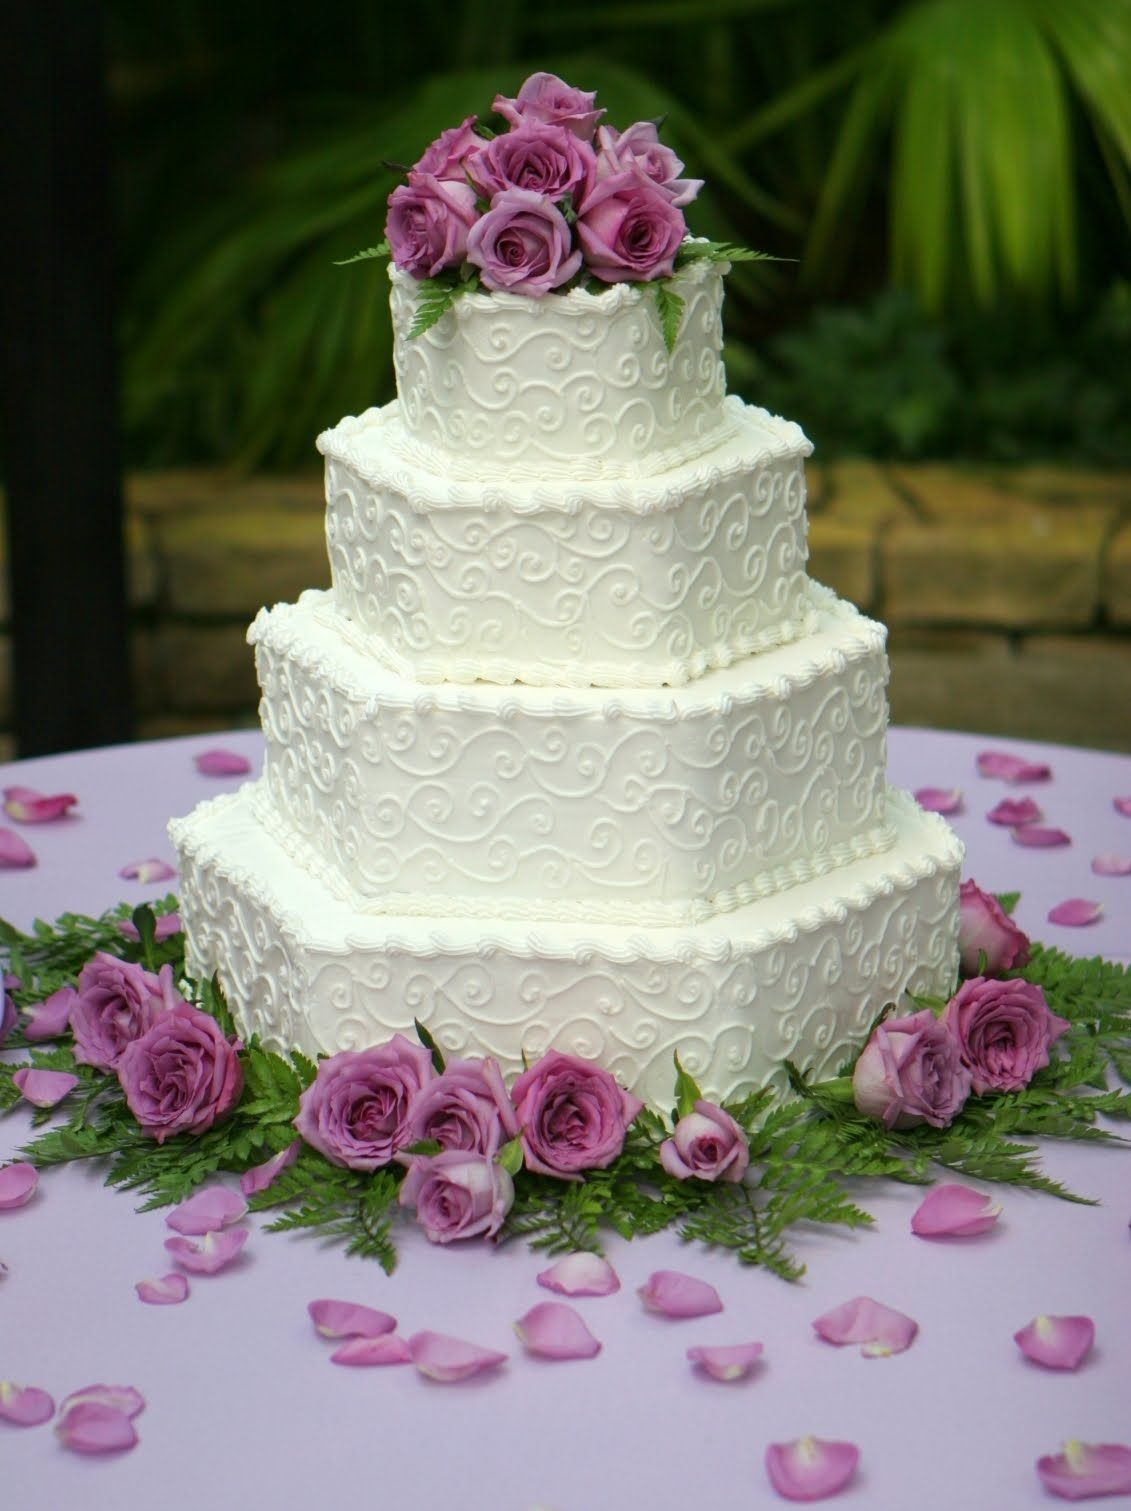 wedding cake without fondant - Google Search | Wedding cakes ...